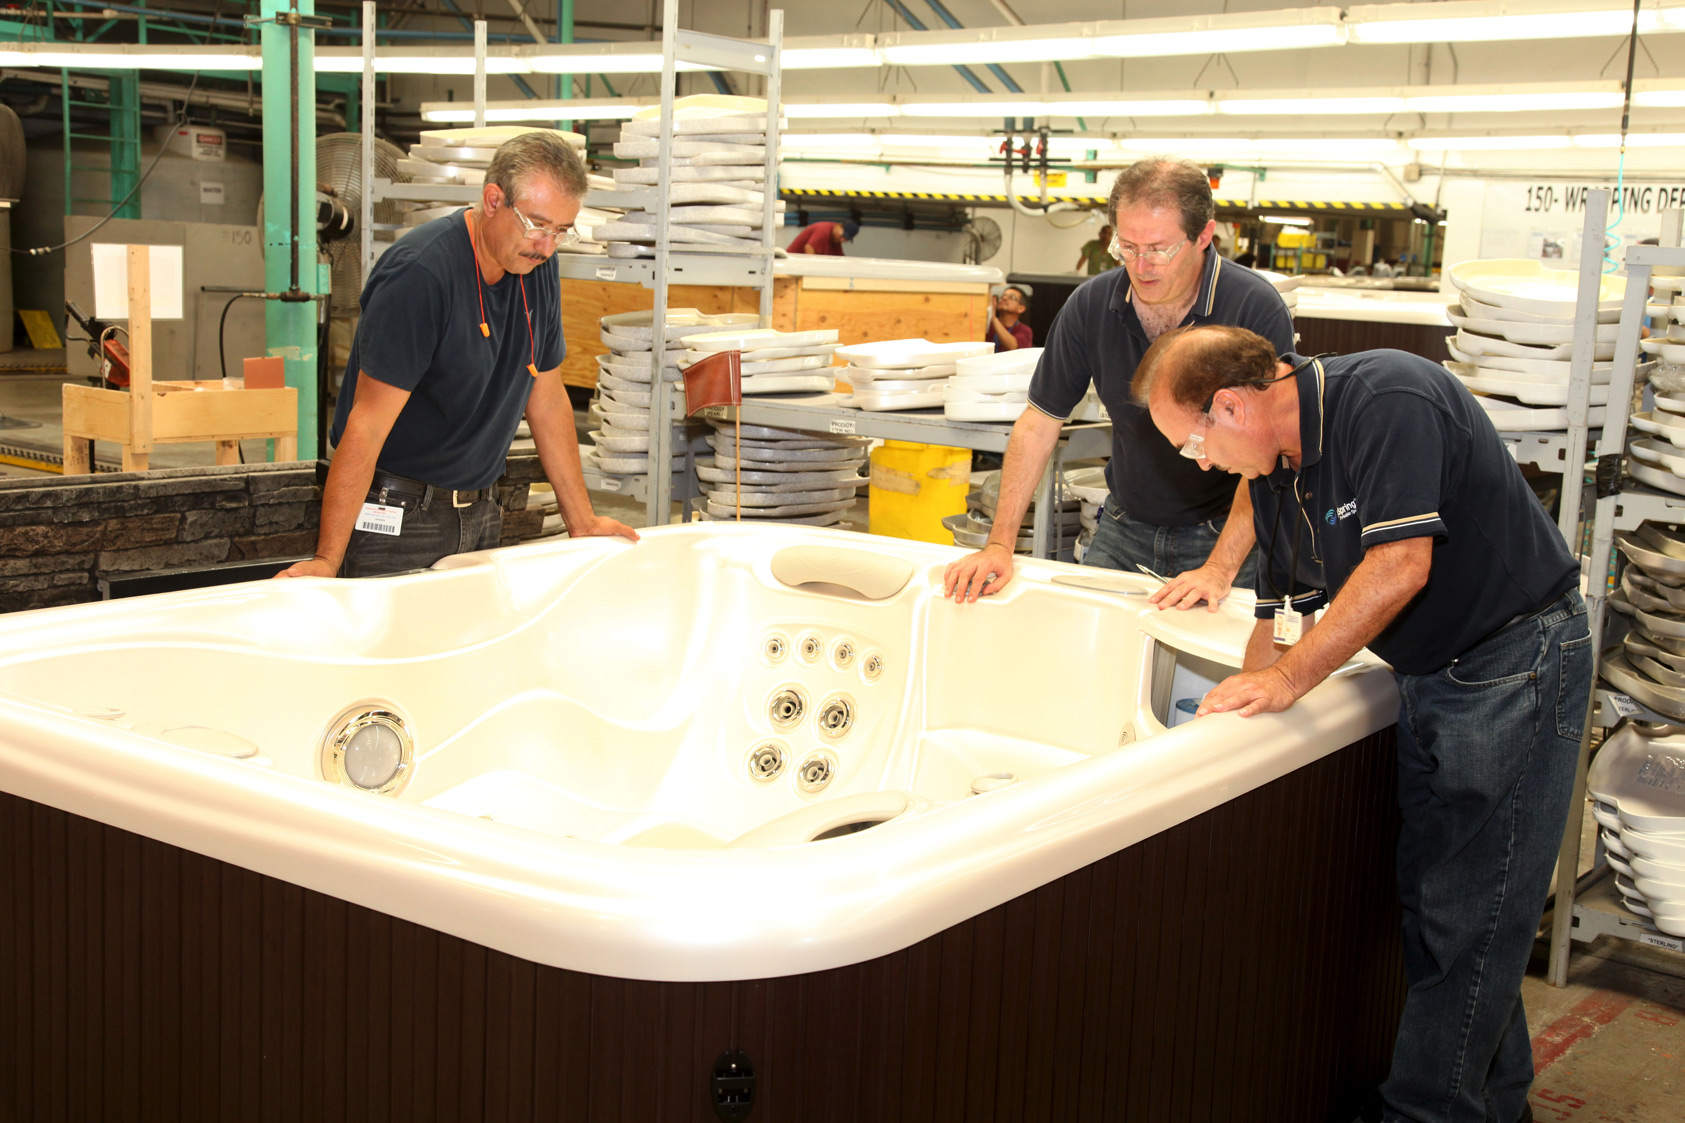 Engineers Spa - Watkins Manufacturing